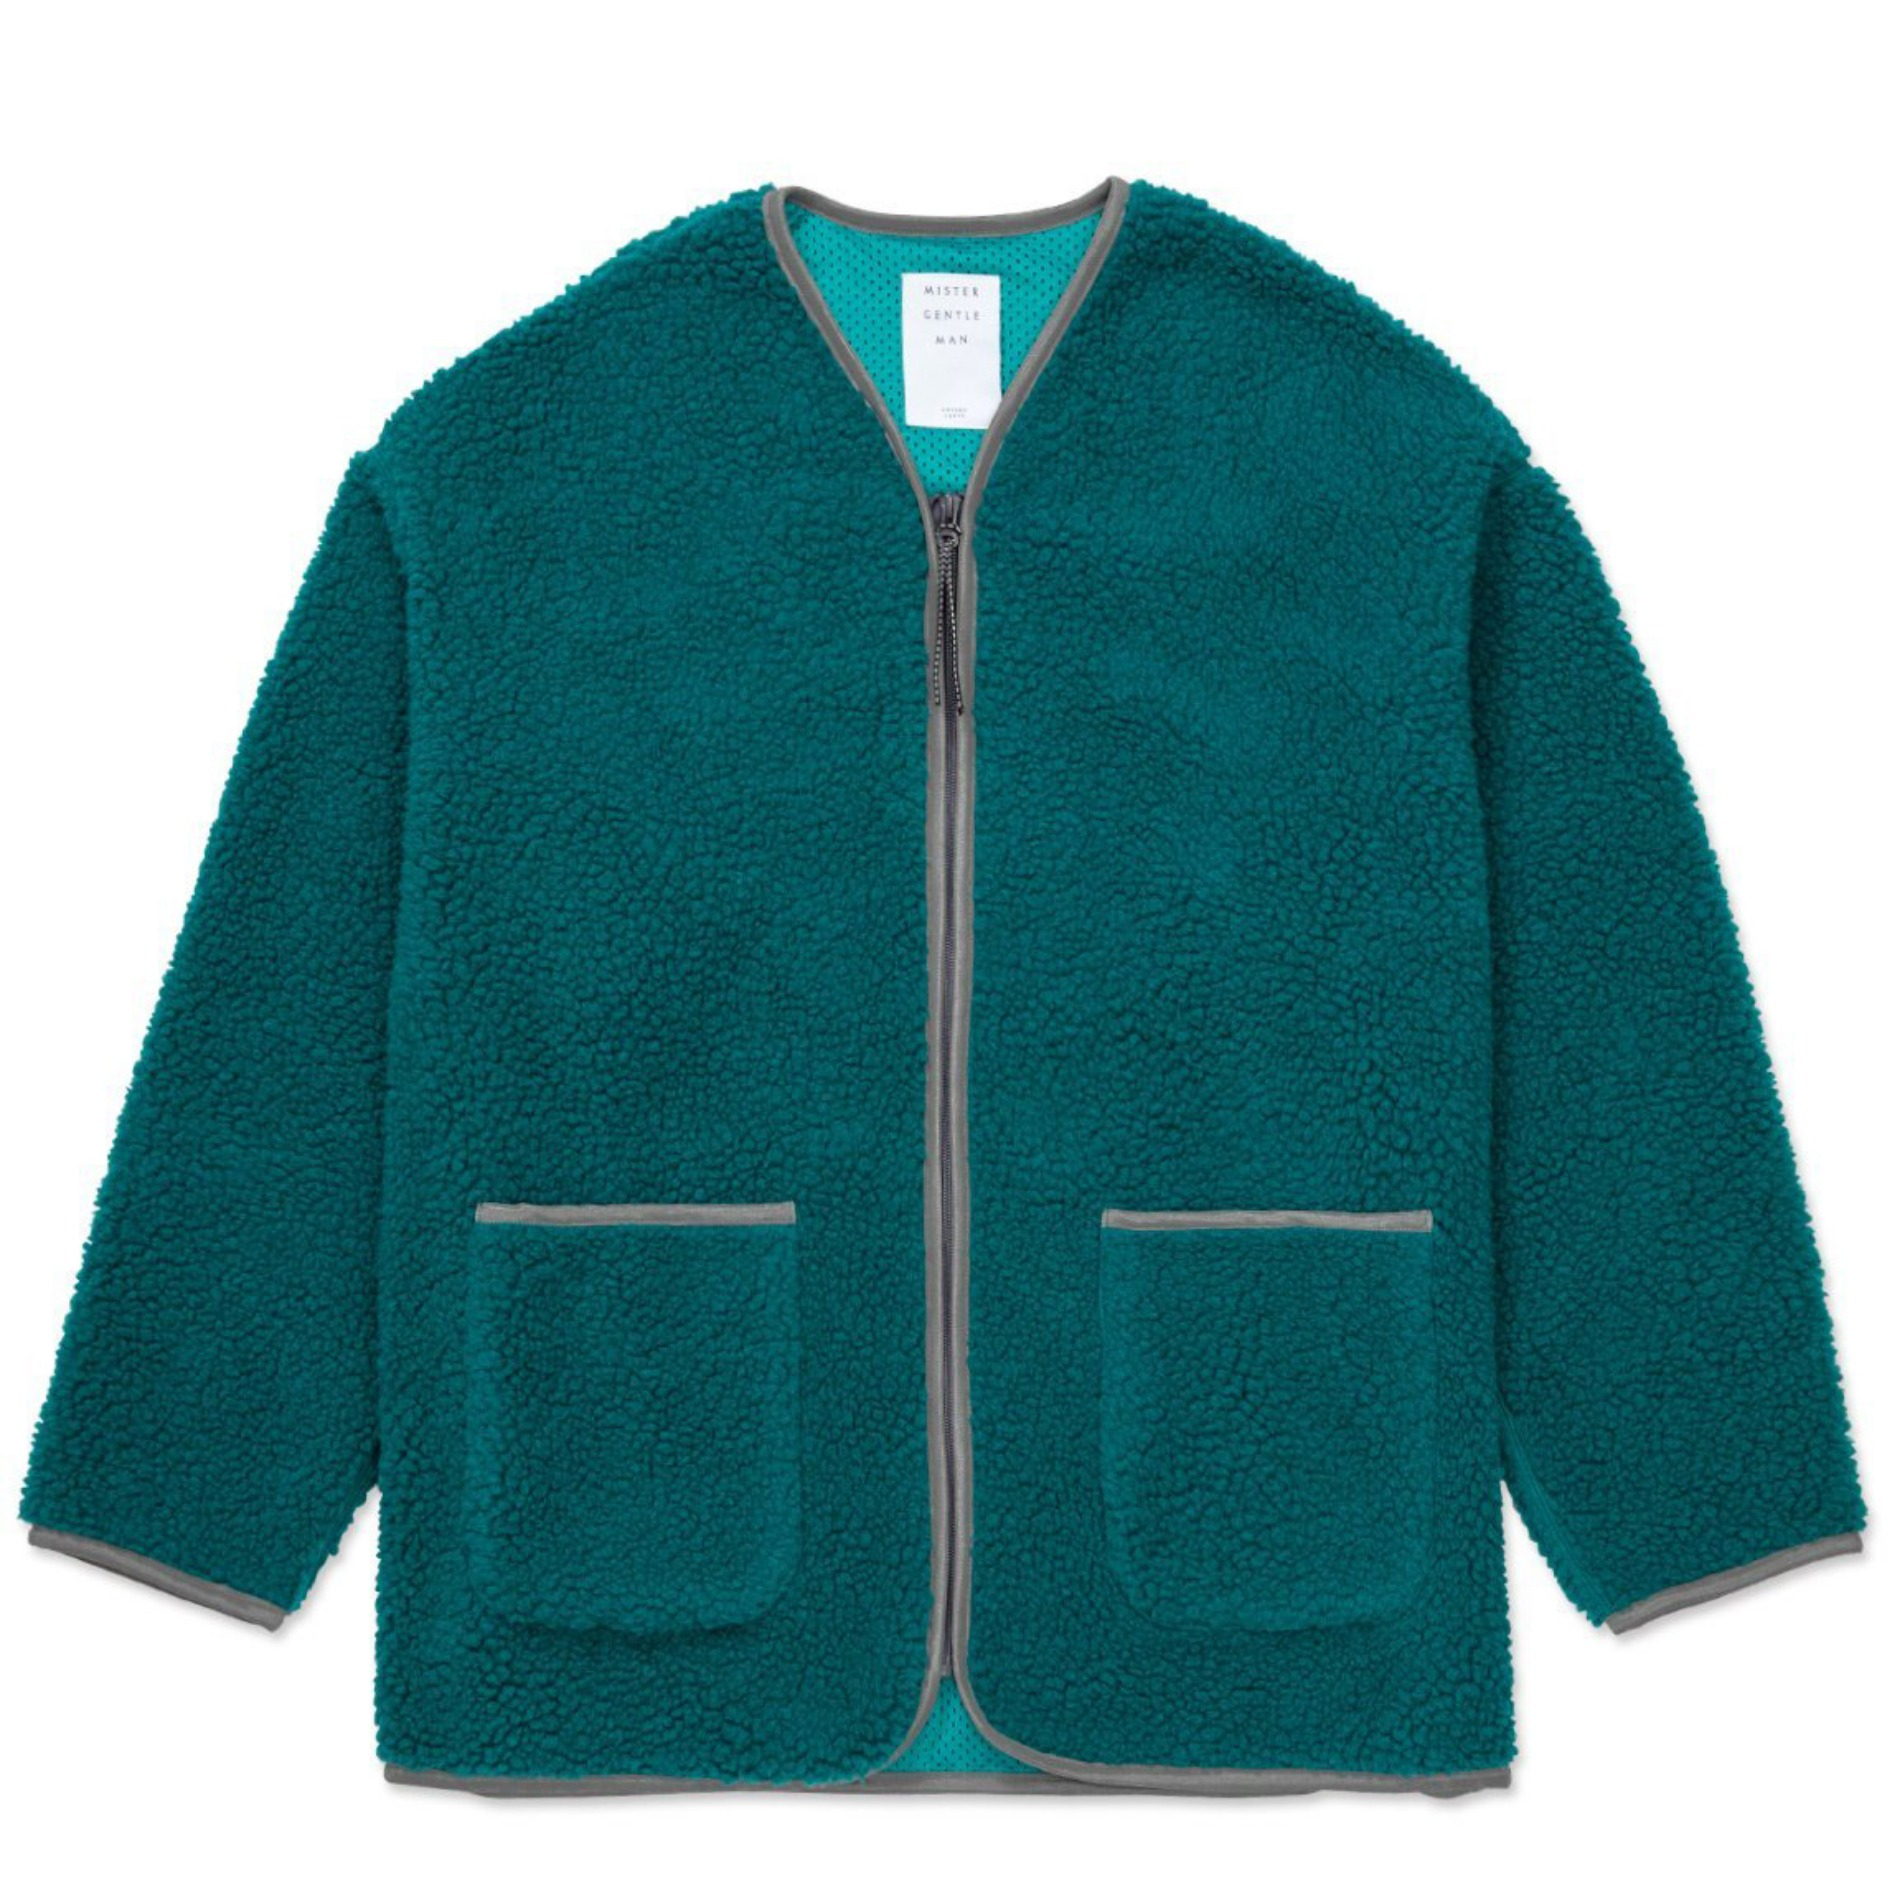 AW20 MISTER GENTLEMAN BOA FLEECE ZIP UP JACKET BLUE GREEN